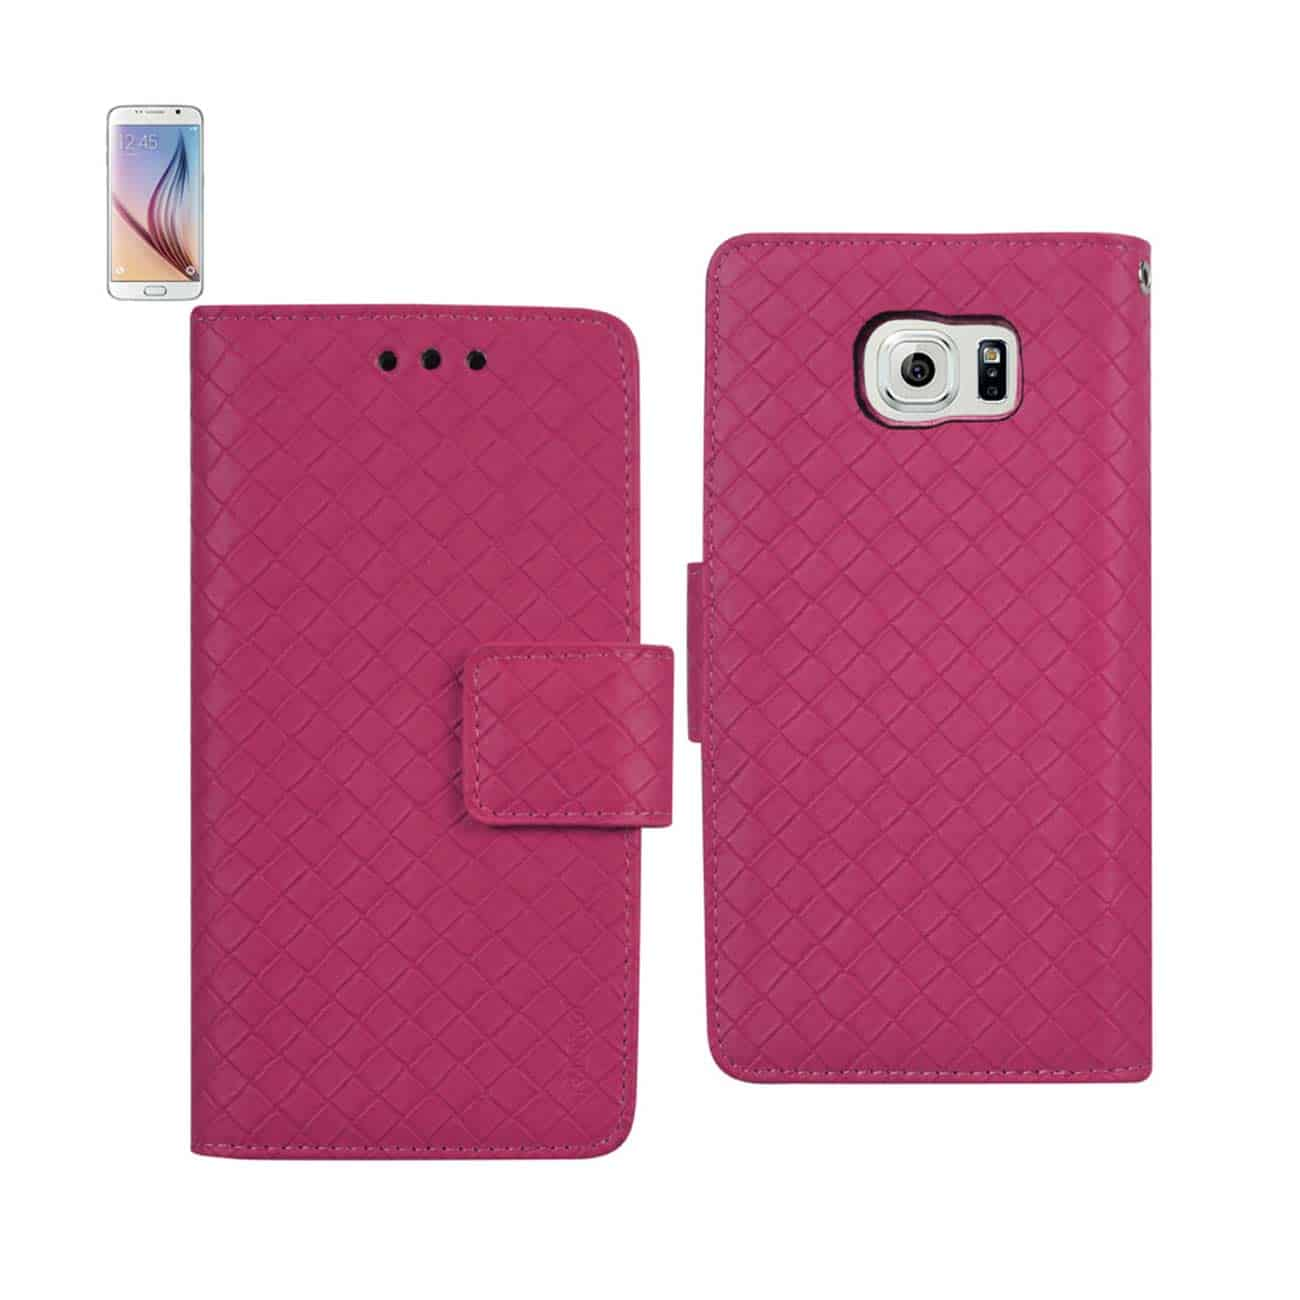 SAMSUNG GALAXY S6 BRAIDED WALLET CASE IN HOT PINK